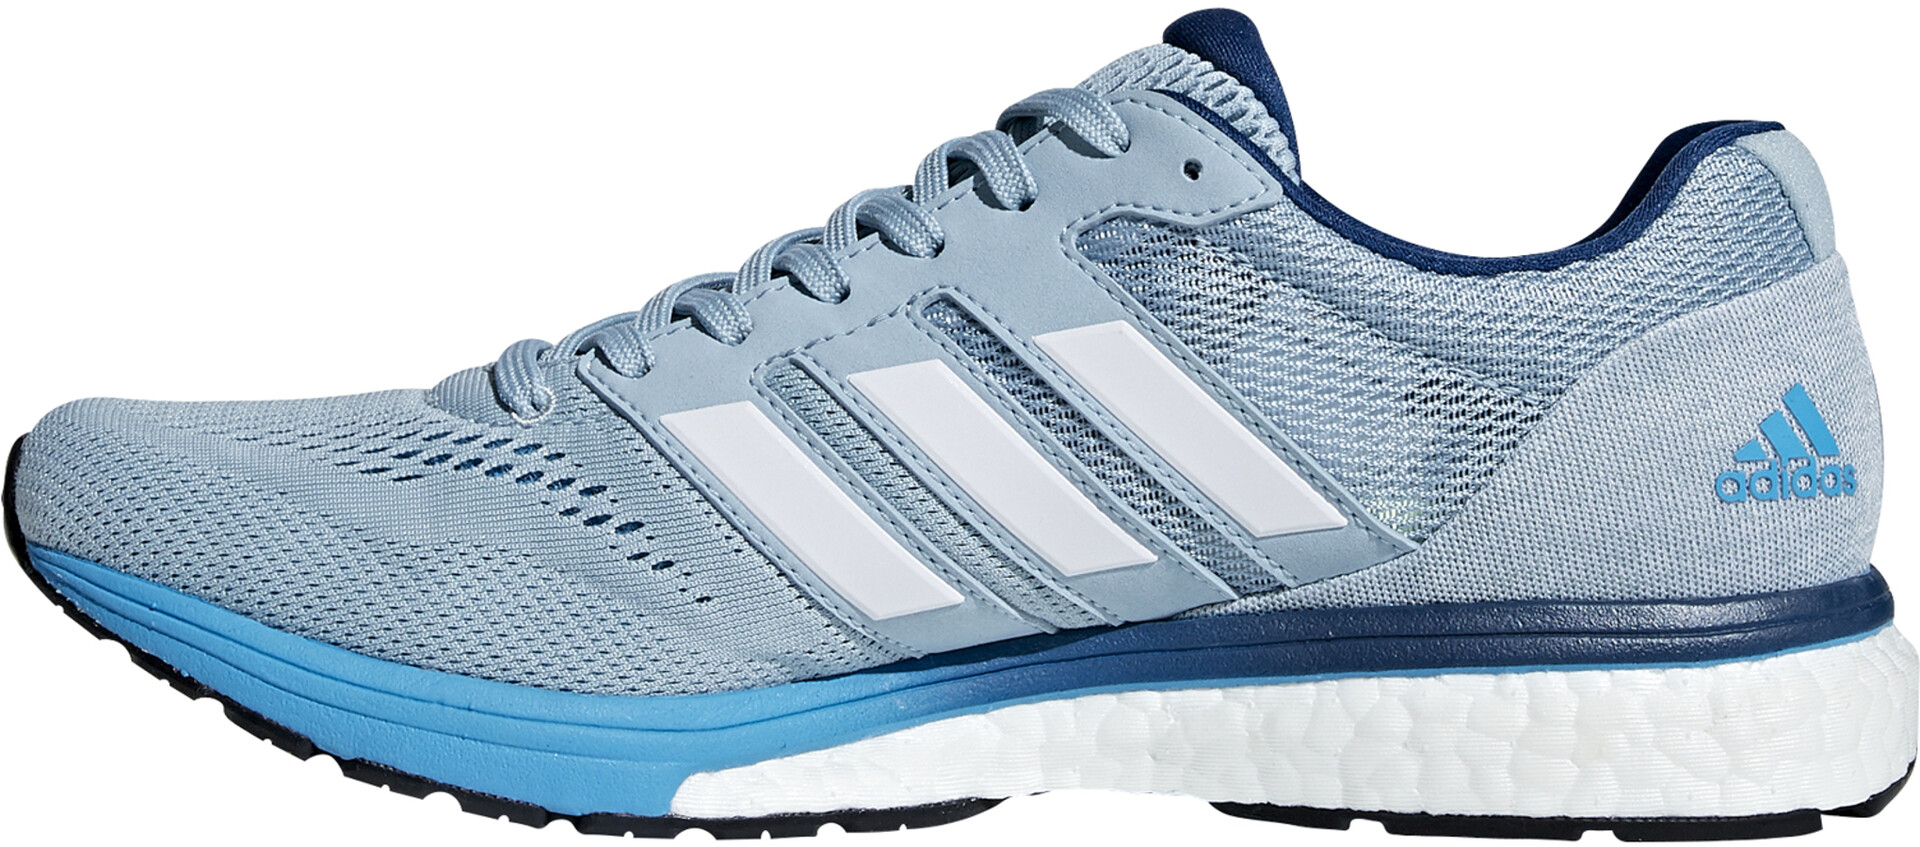 Adidas Adizero Zapatillas Whiteshock Boston HombreAsh 7 Greyftwr Cyan rCoexBWd